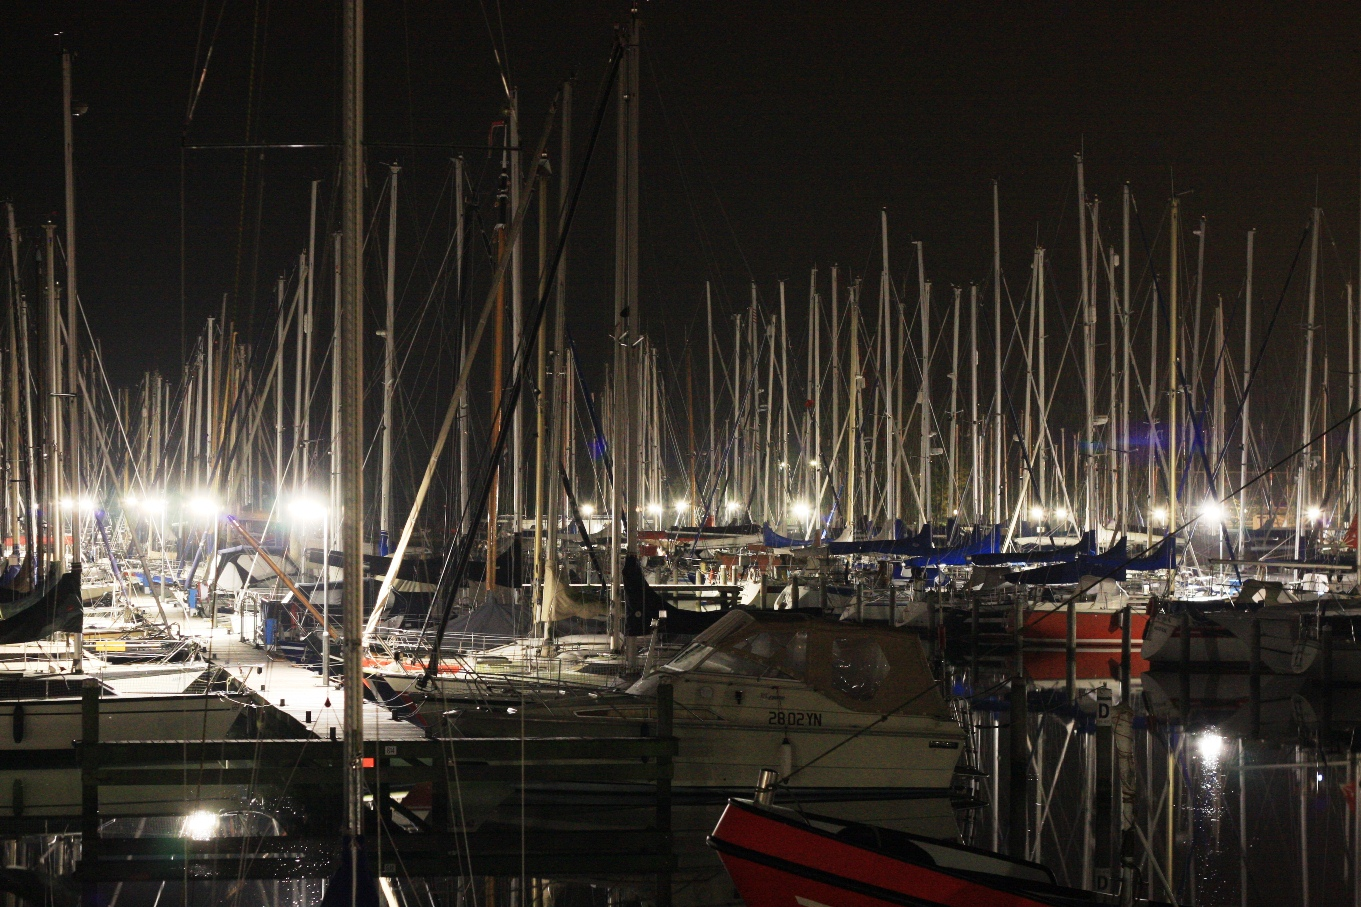 Grashaven Hoorn at night